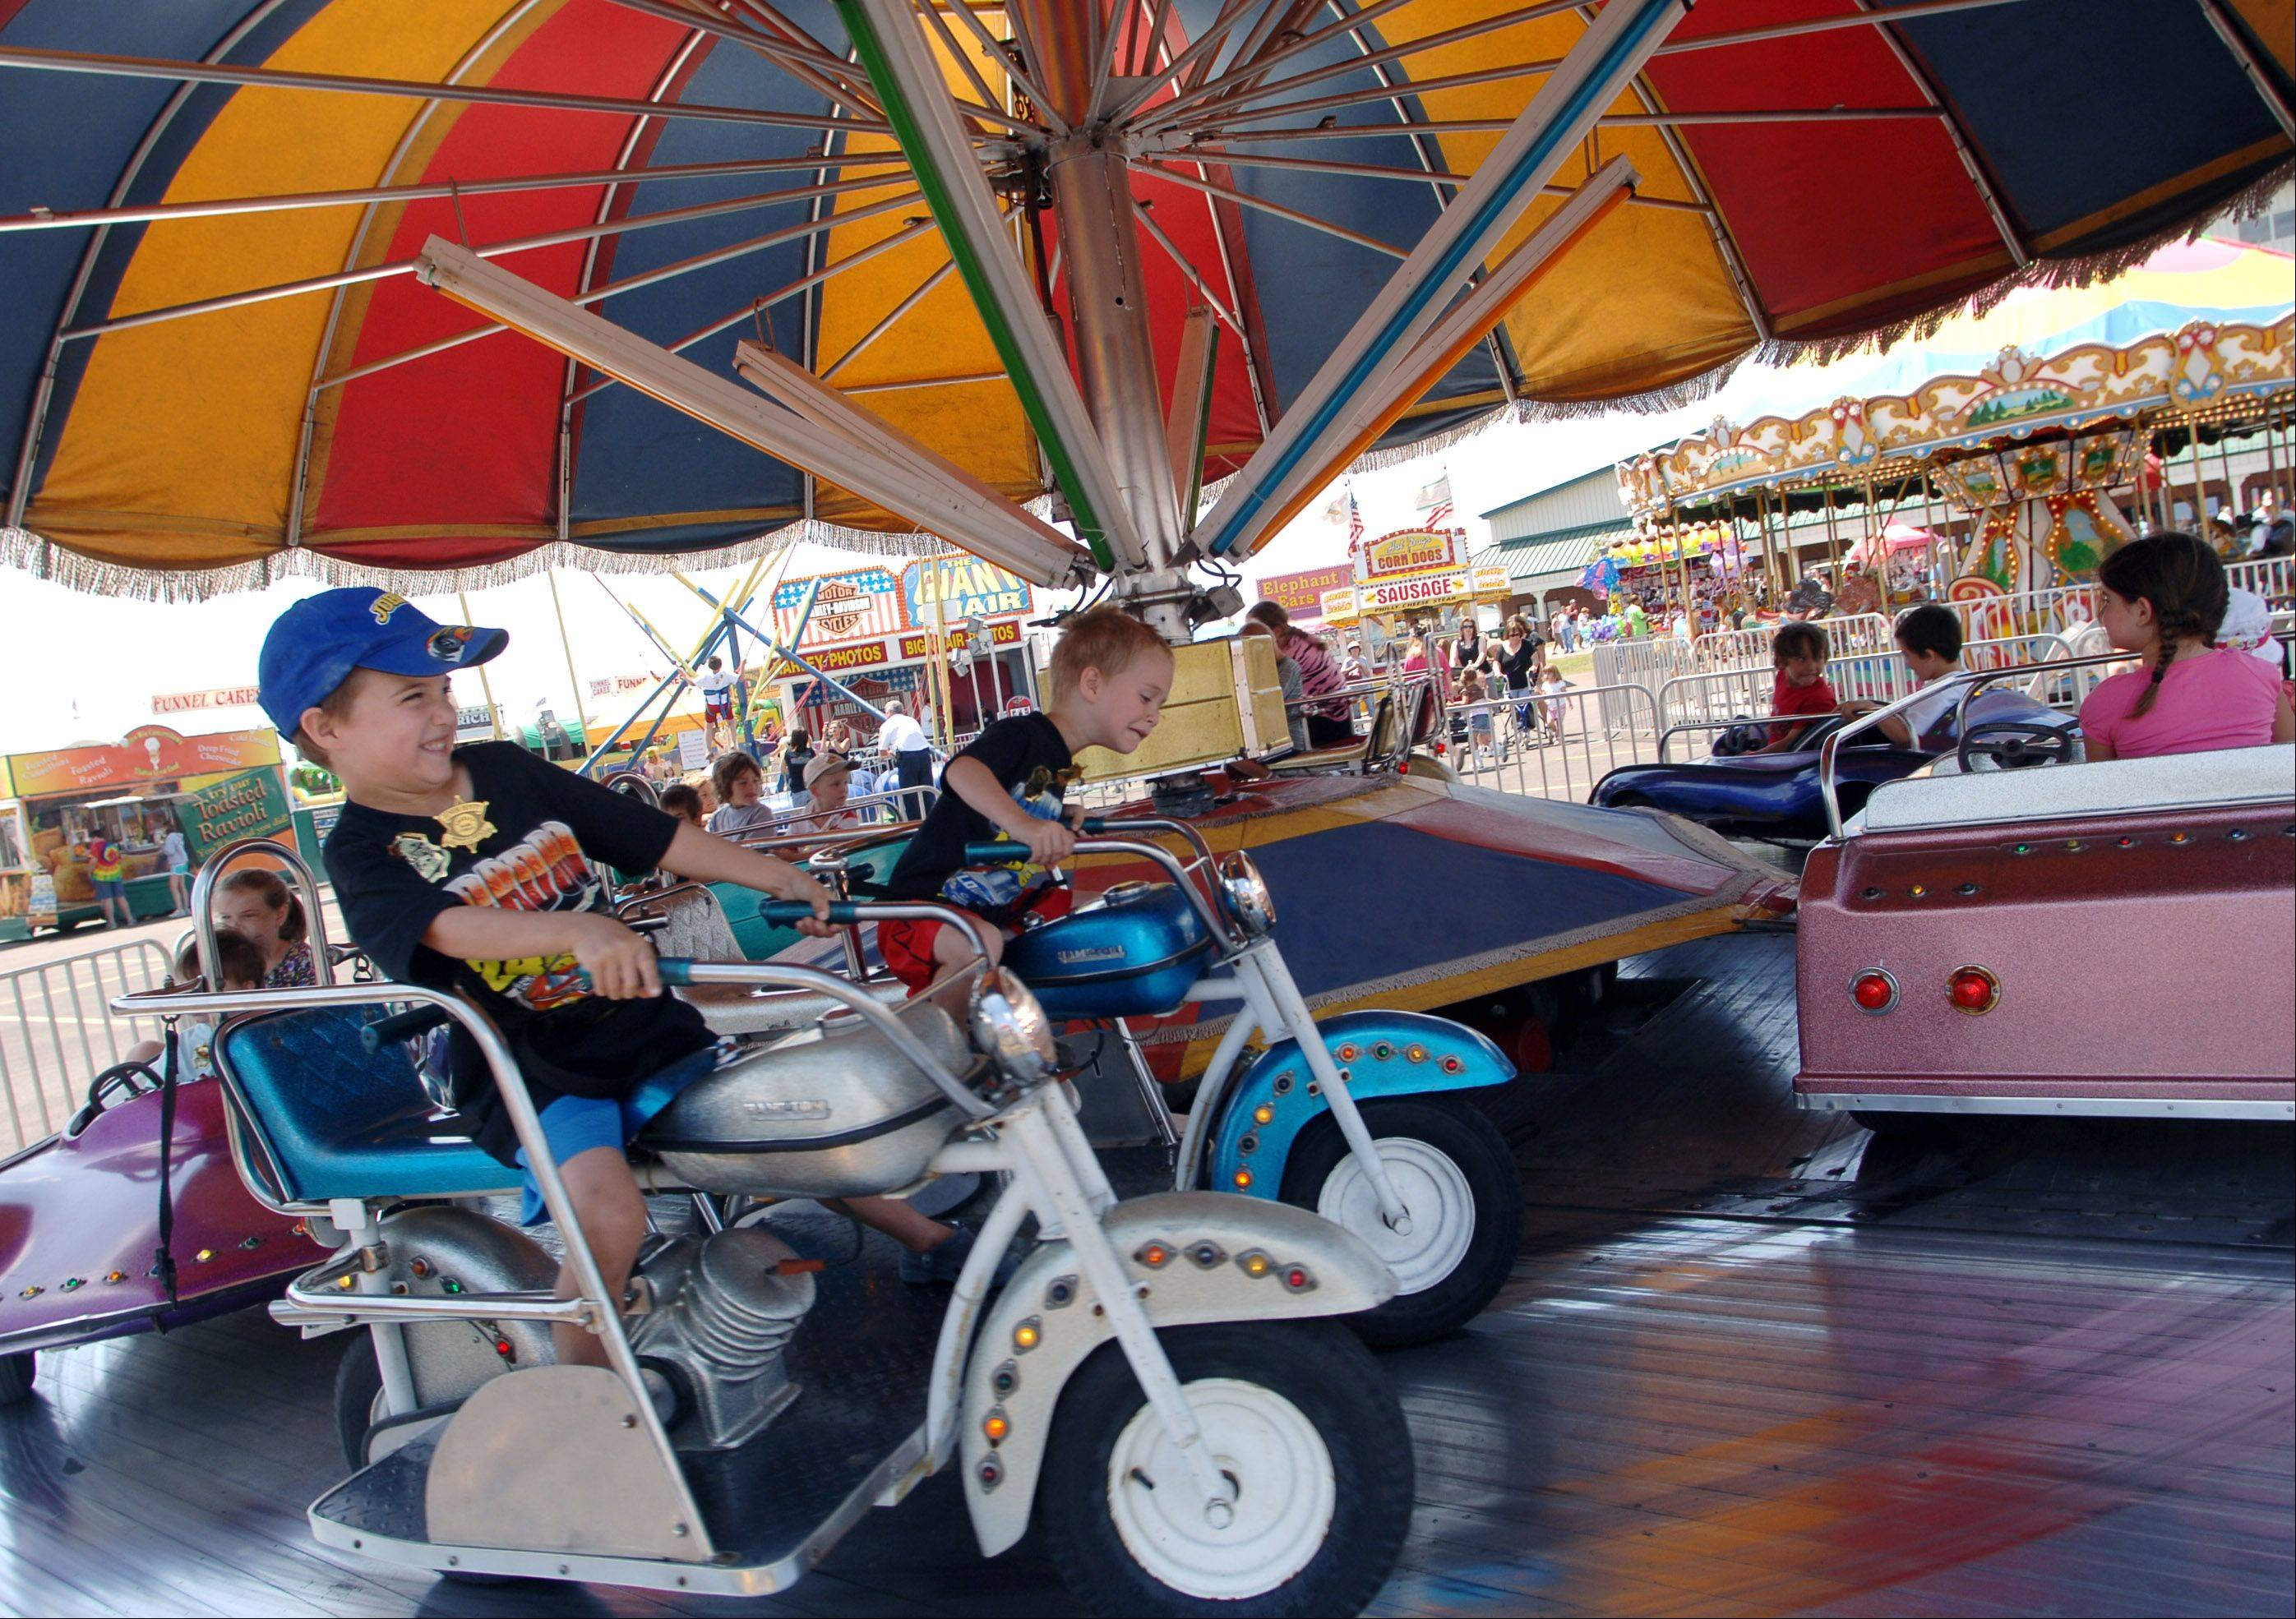 Fairgoers enjoy a previous edition of the Lake County Fair in Grayslake.